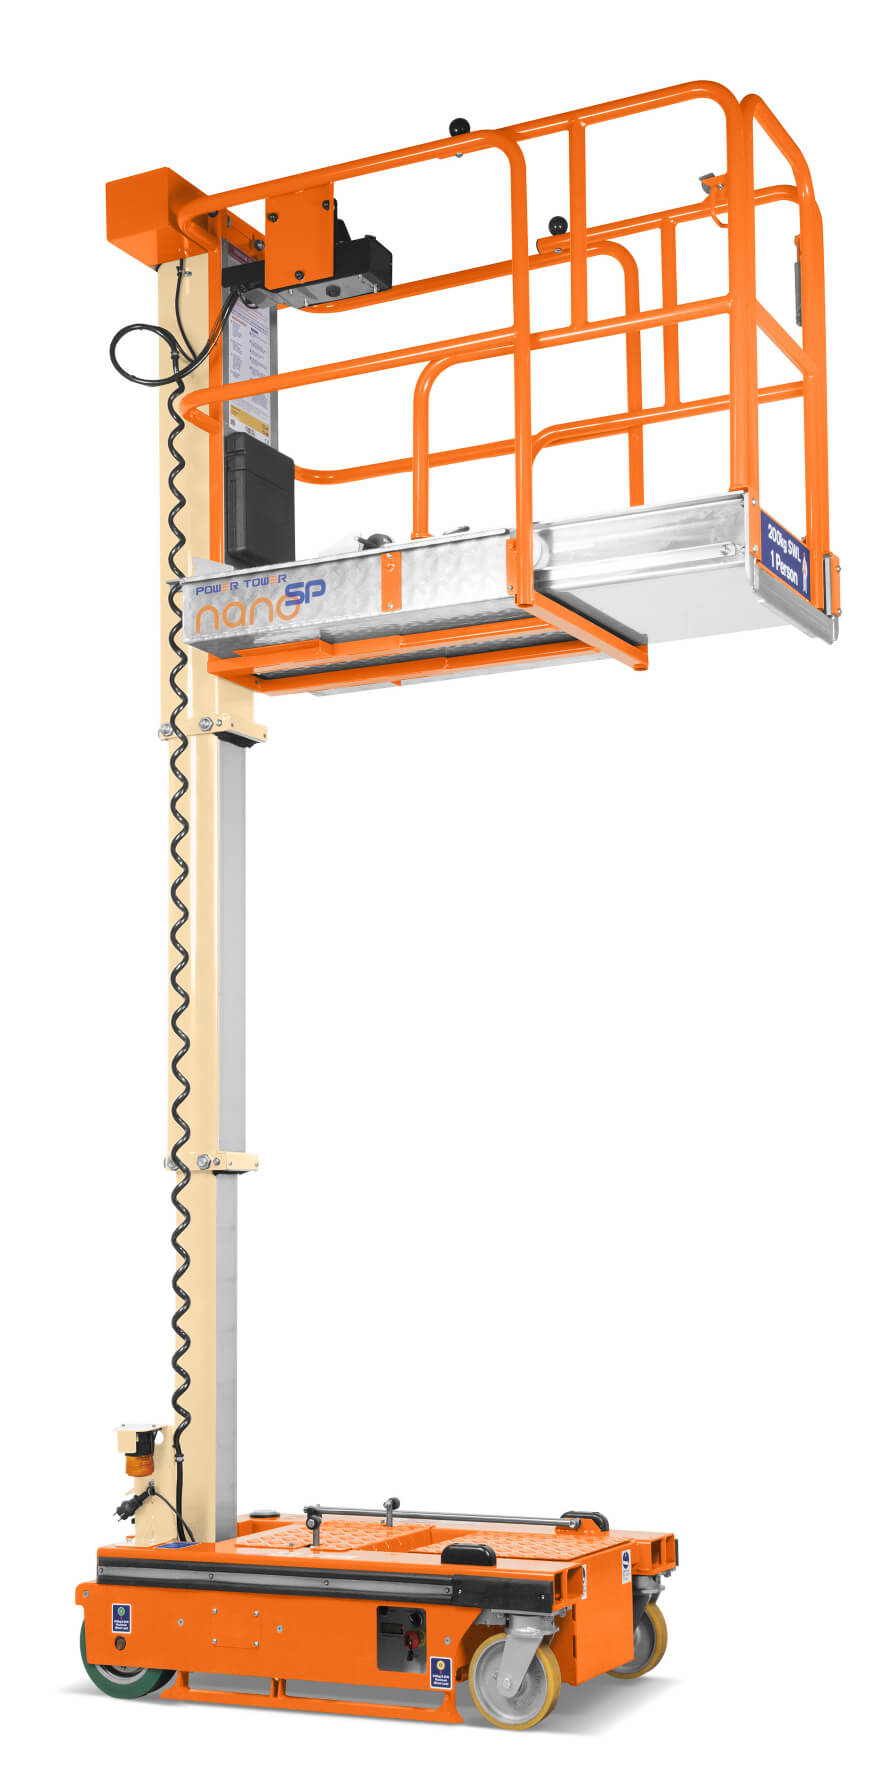 Vertical Lift Rental | Vertical Lift for Rent | Aerial Work Platform